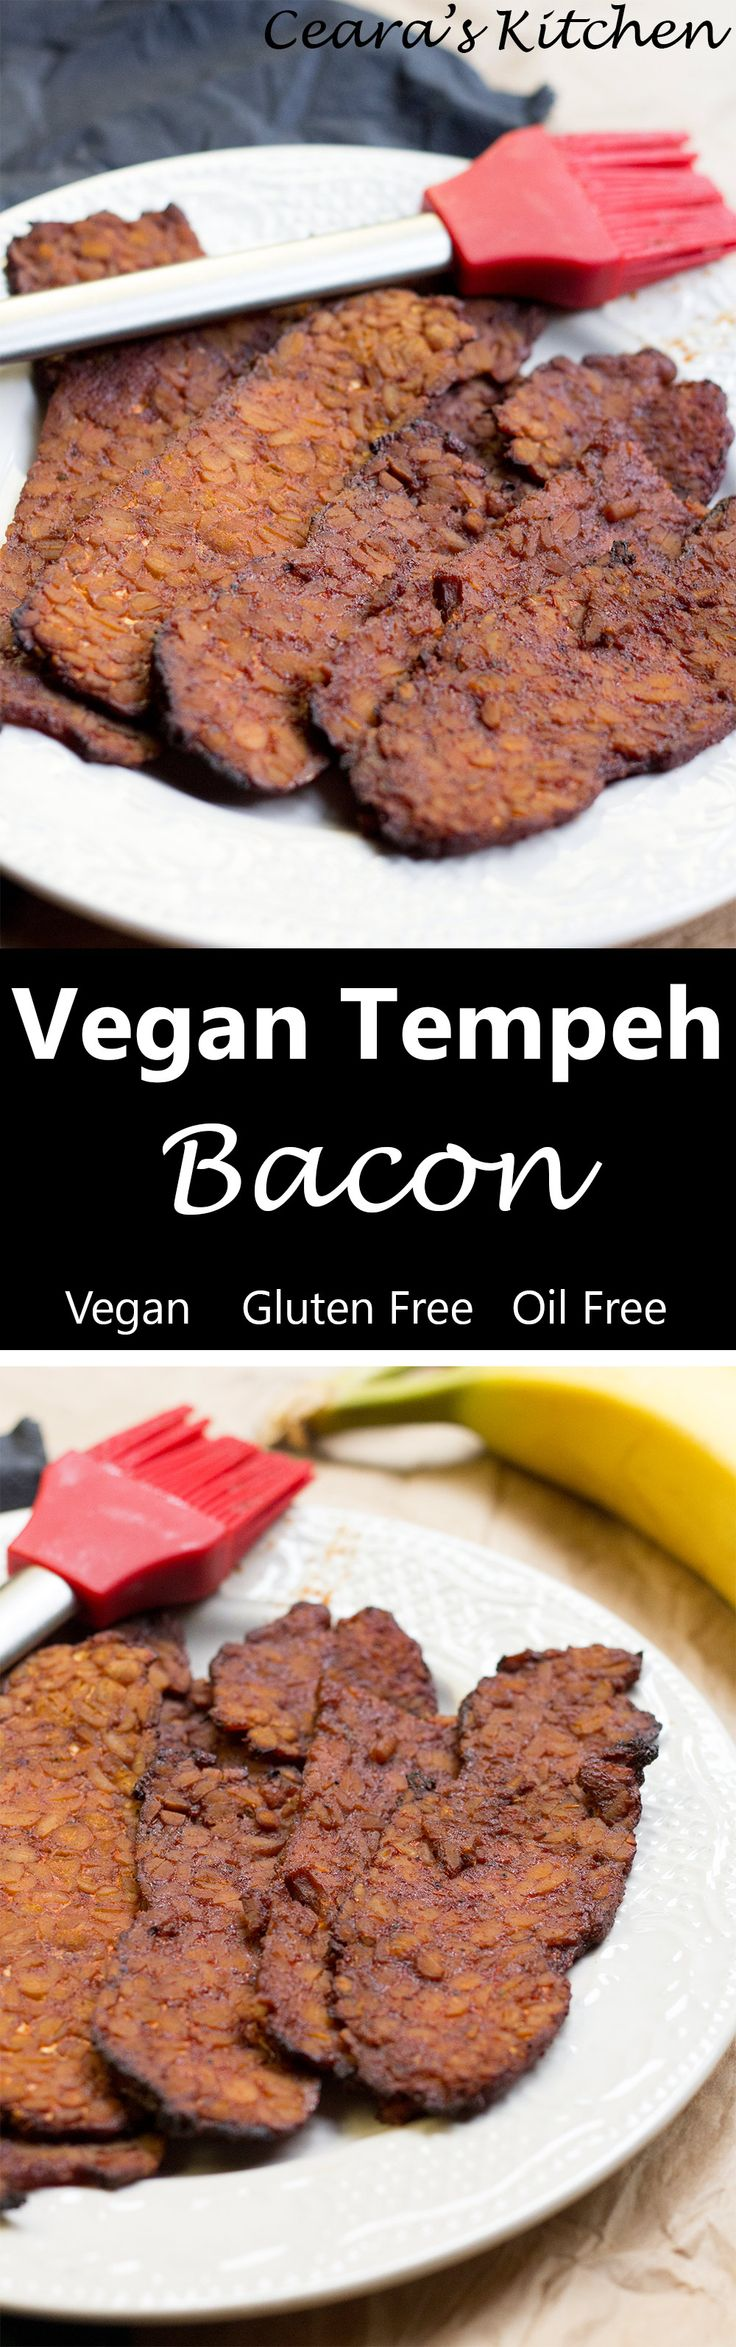 Vegan Tempeh Bacon Baked NOT Fried!